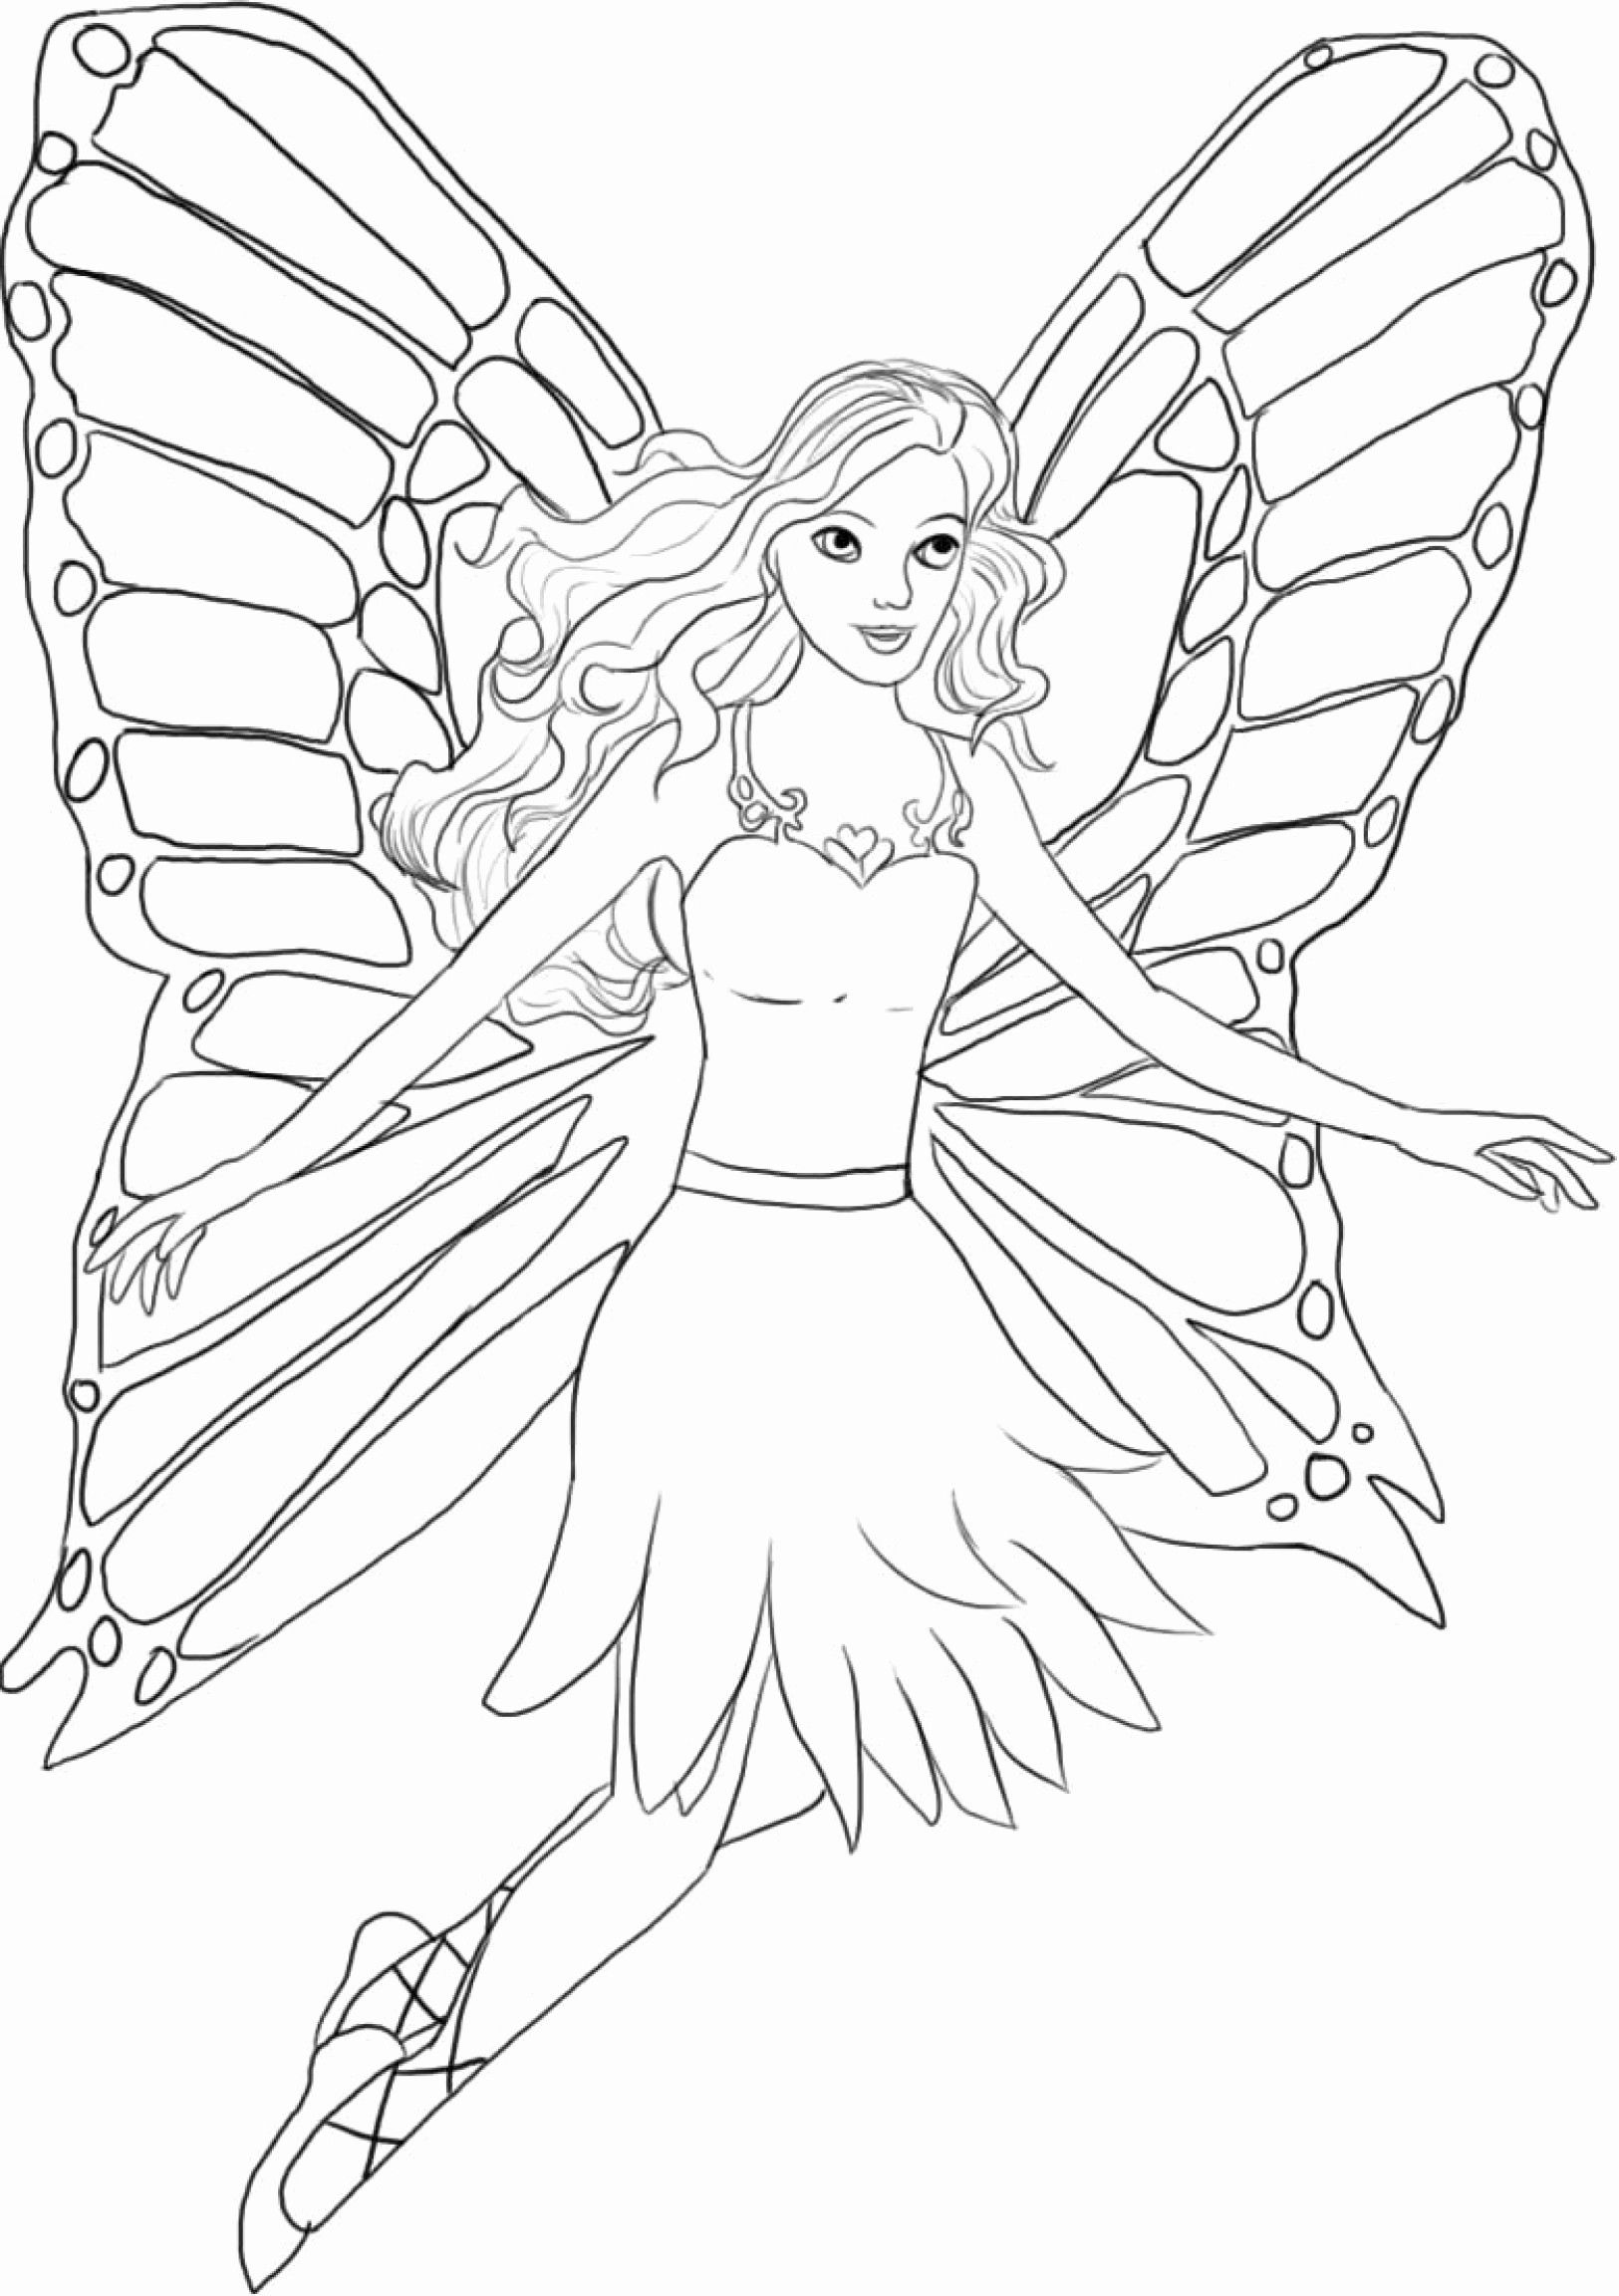 Printable Fairy Princess Coloring Pages Through The Thousands Of Images Online Regarding Printable Fairy Barbie Coloring Pages Barbie Coloring Fairy Coloring